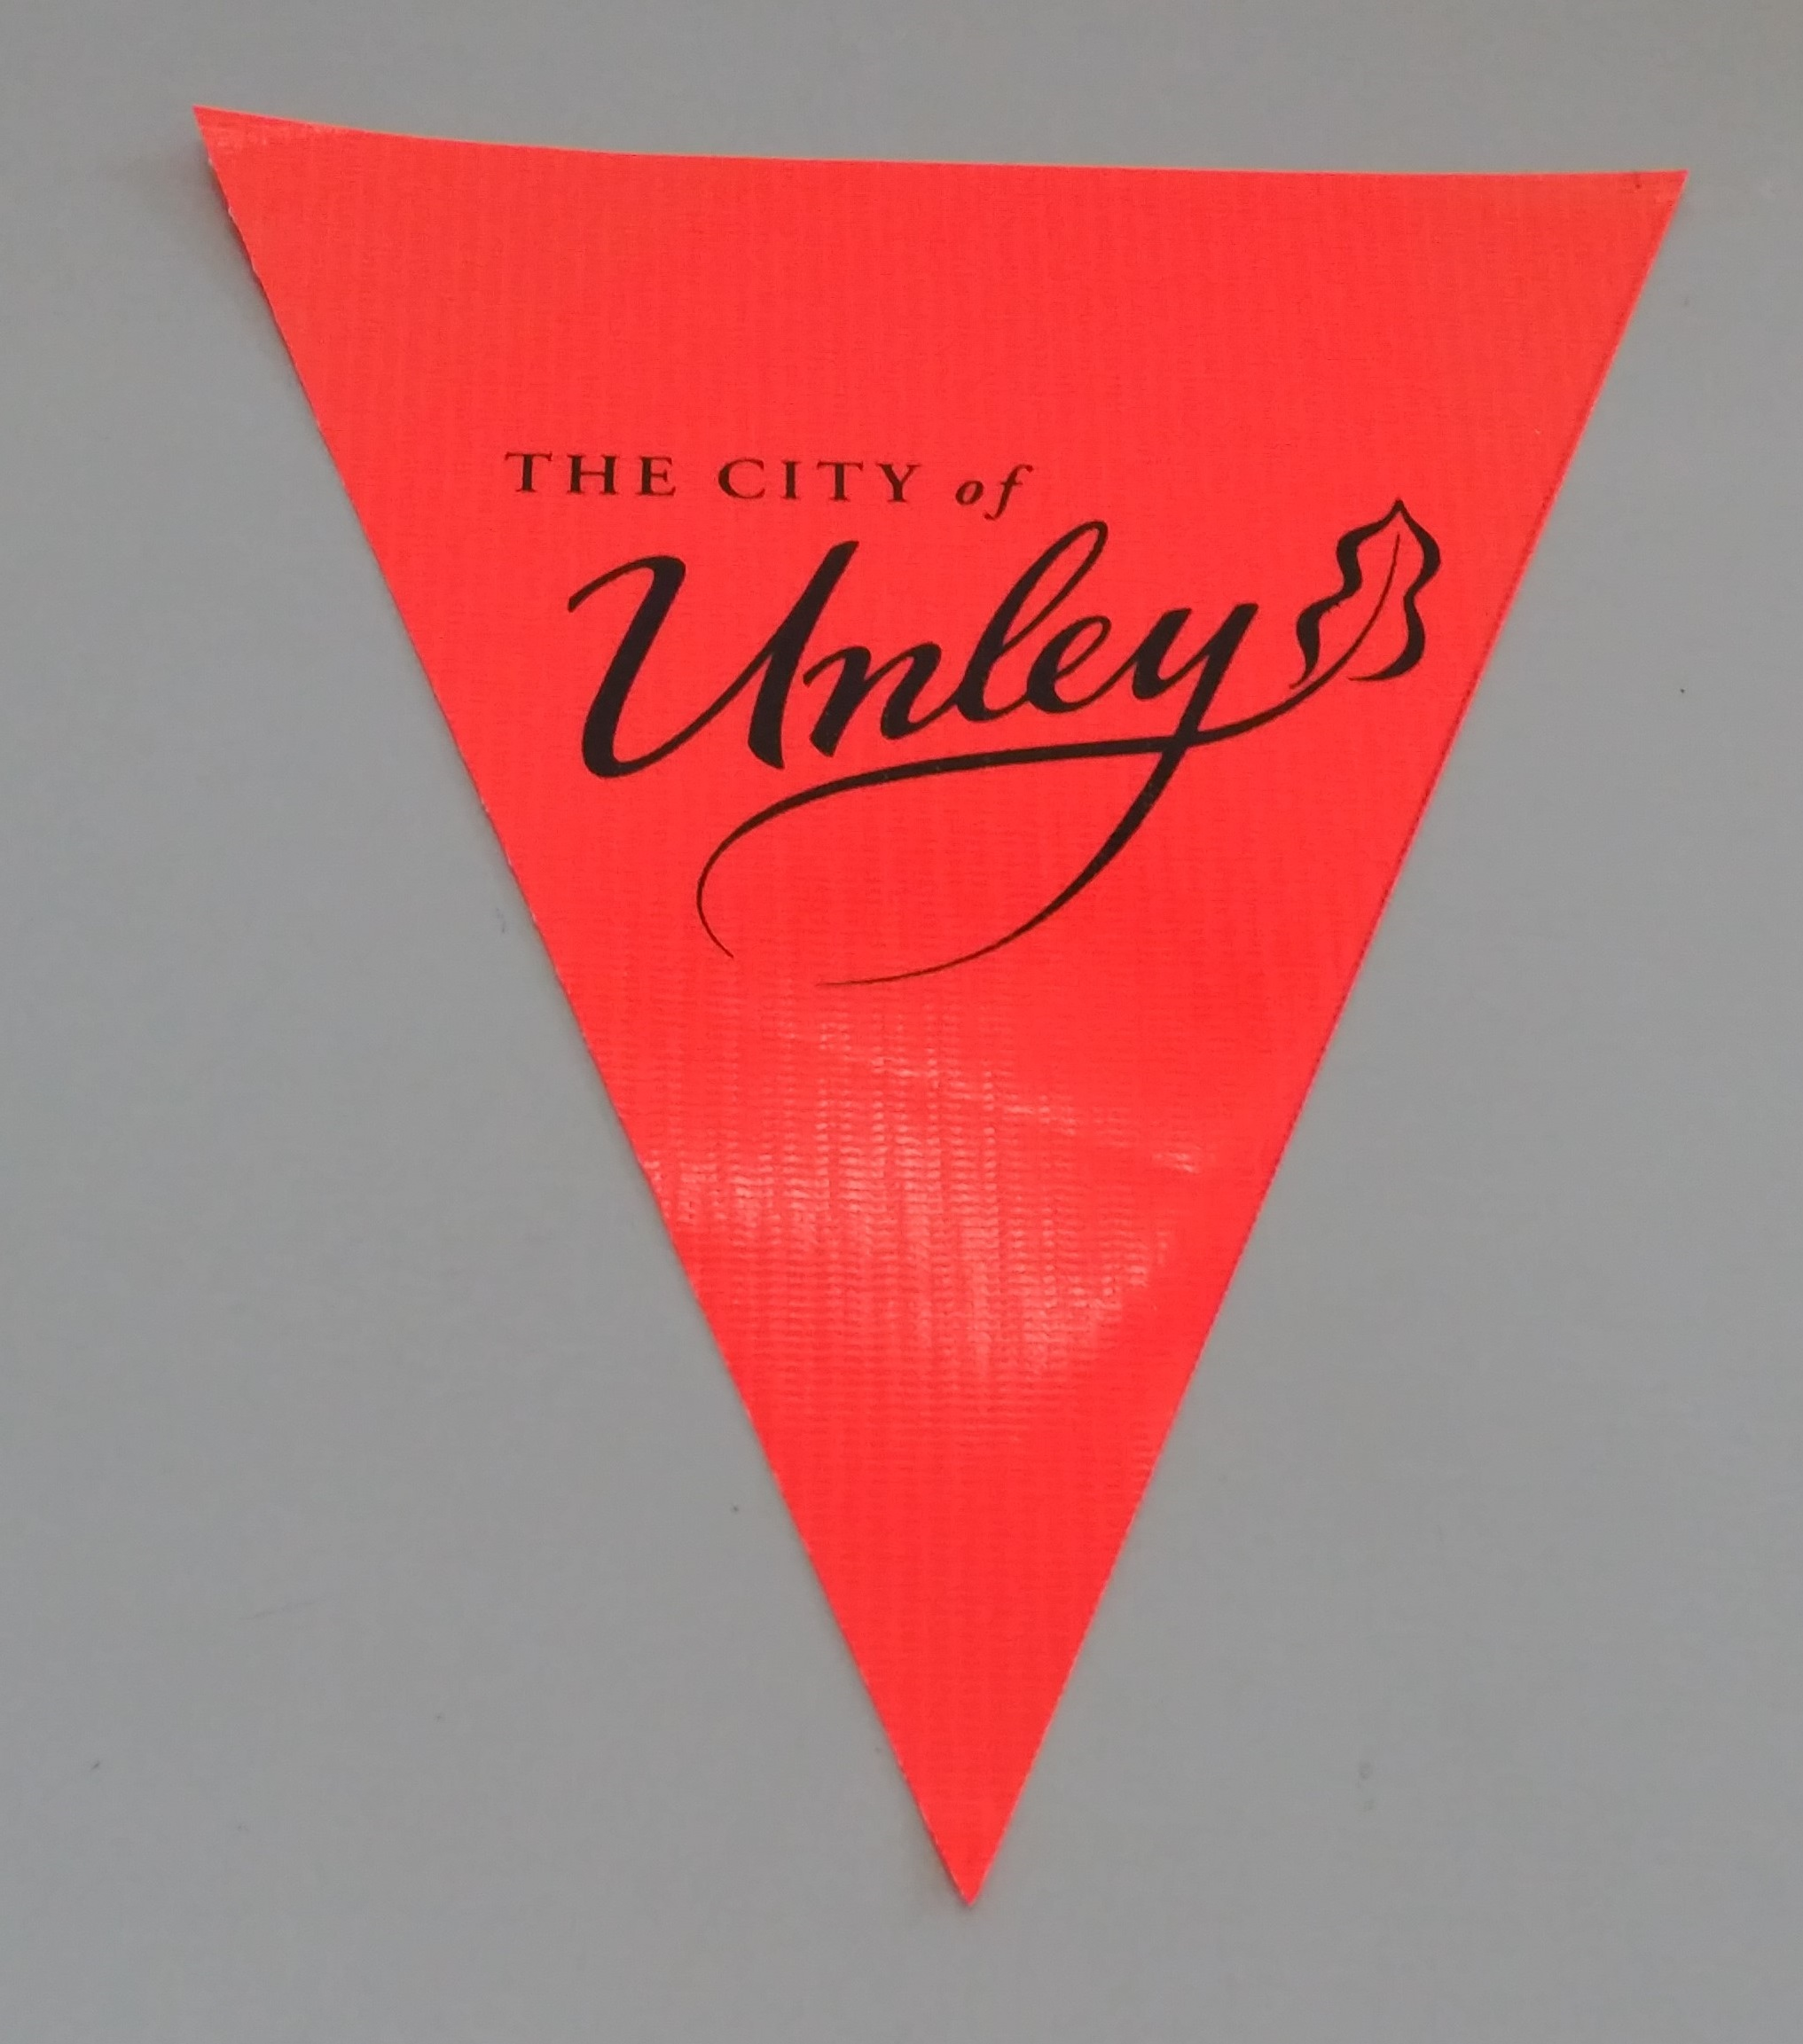 City of Unley (orange)